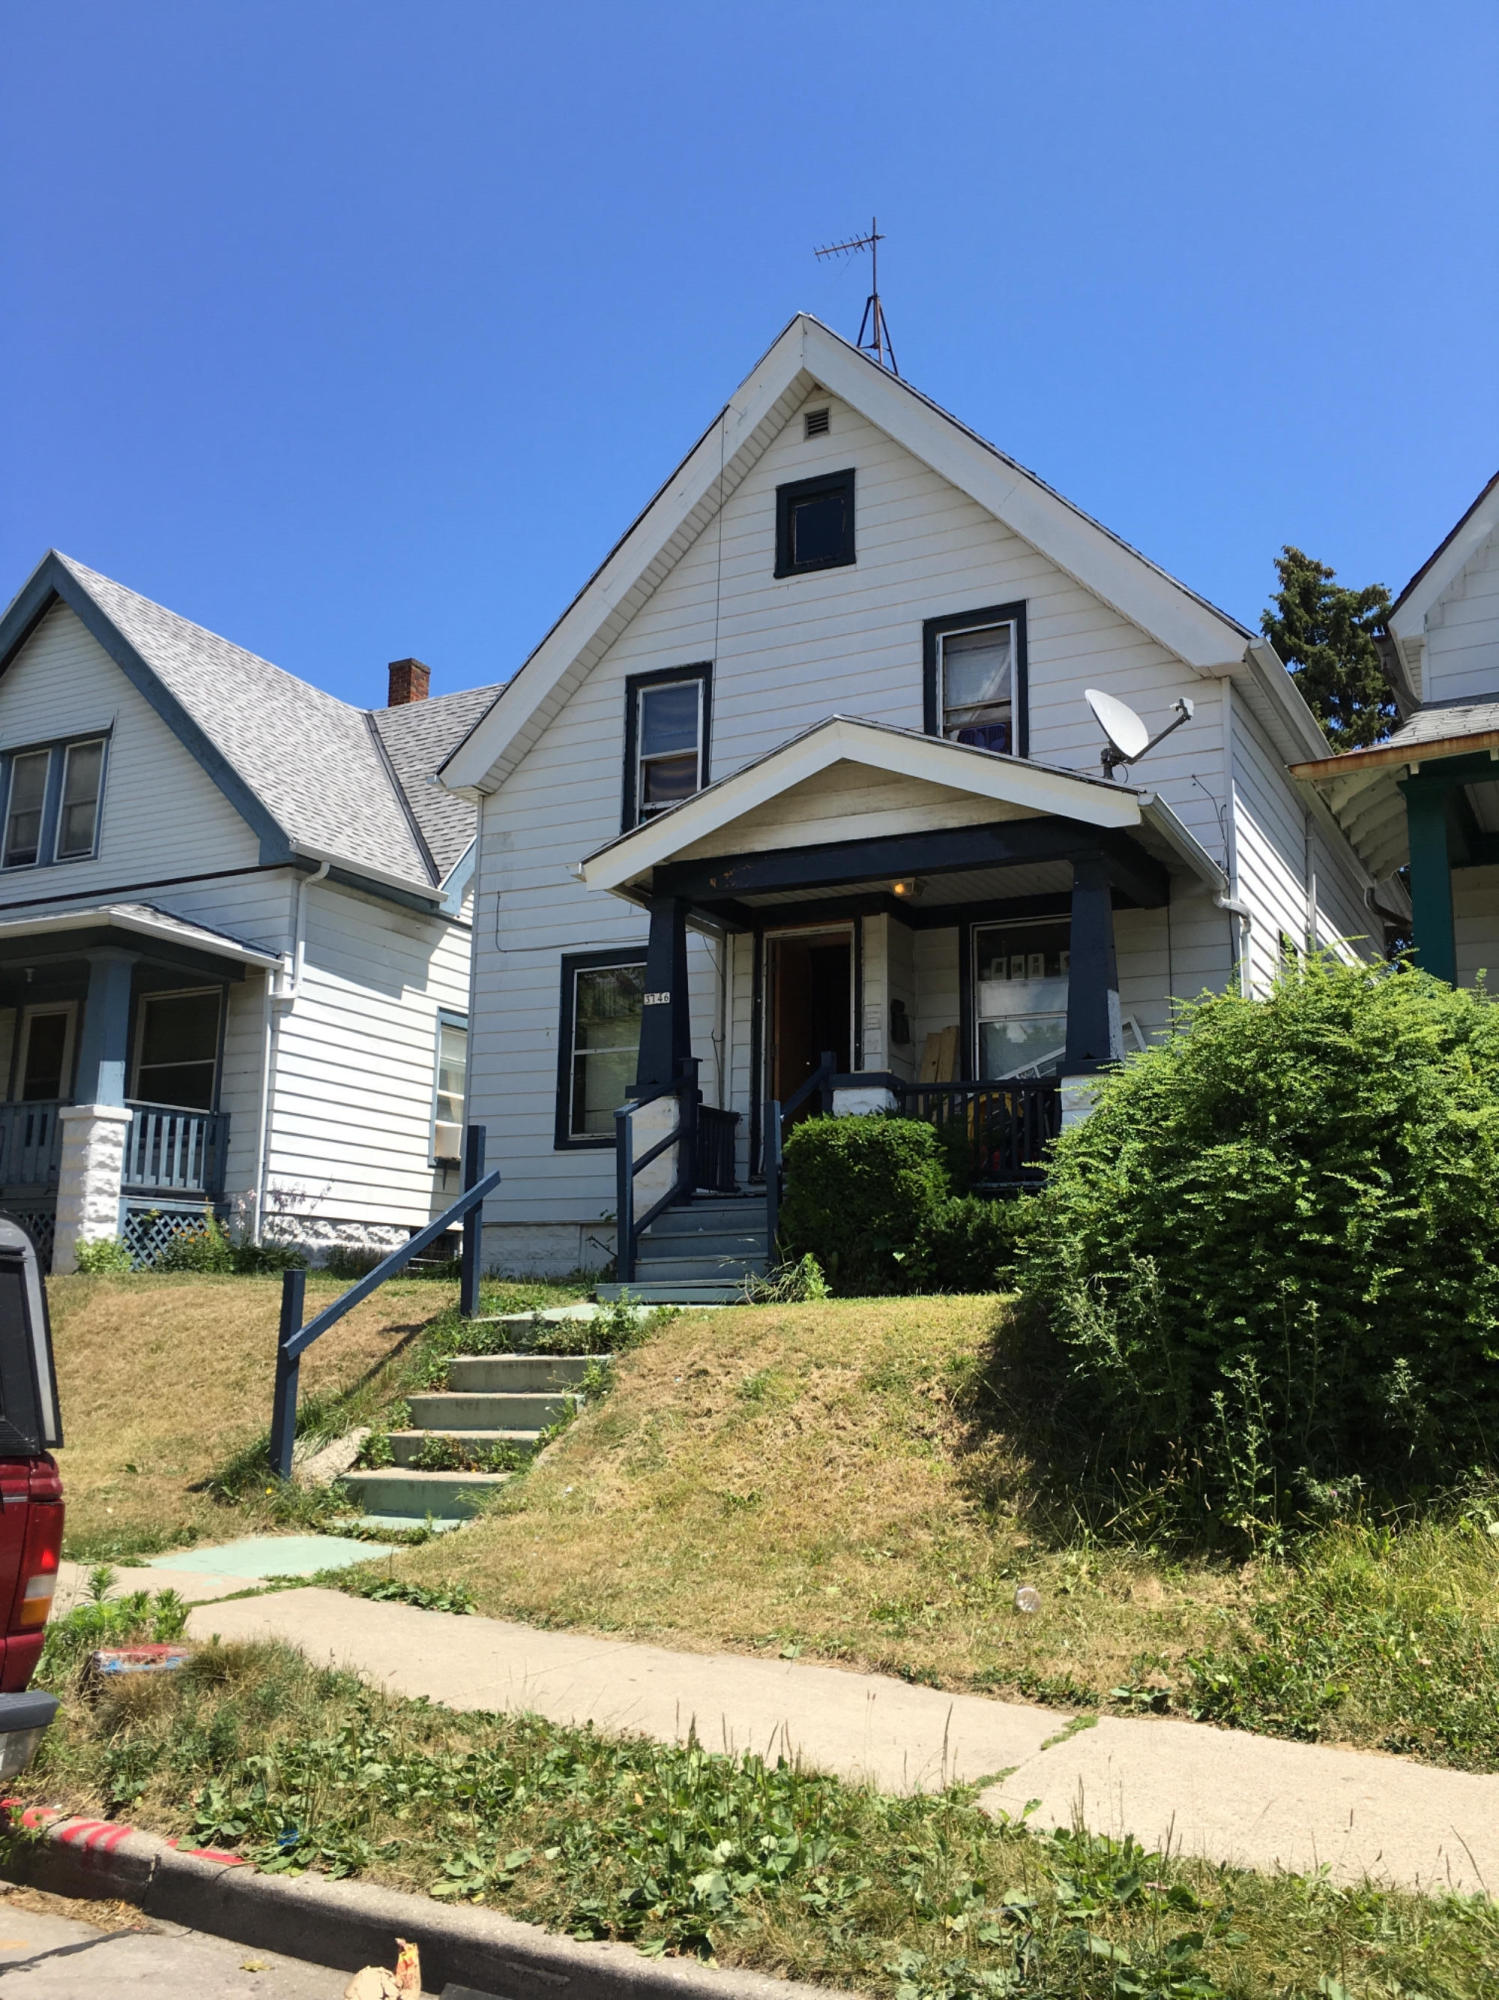 3146 15th St, Milwaukee, Wisconsin 53206, 4 Bedrooms Bedrooms, ,1 BathroomBathrooms,Single-Family,For Sale,15th St,1487737